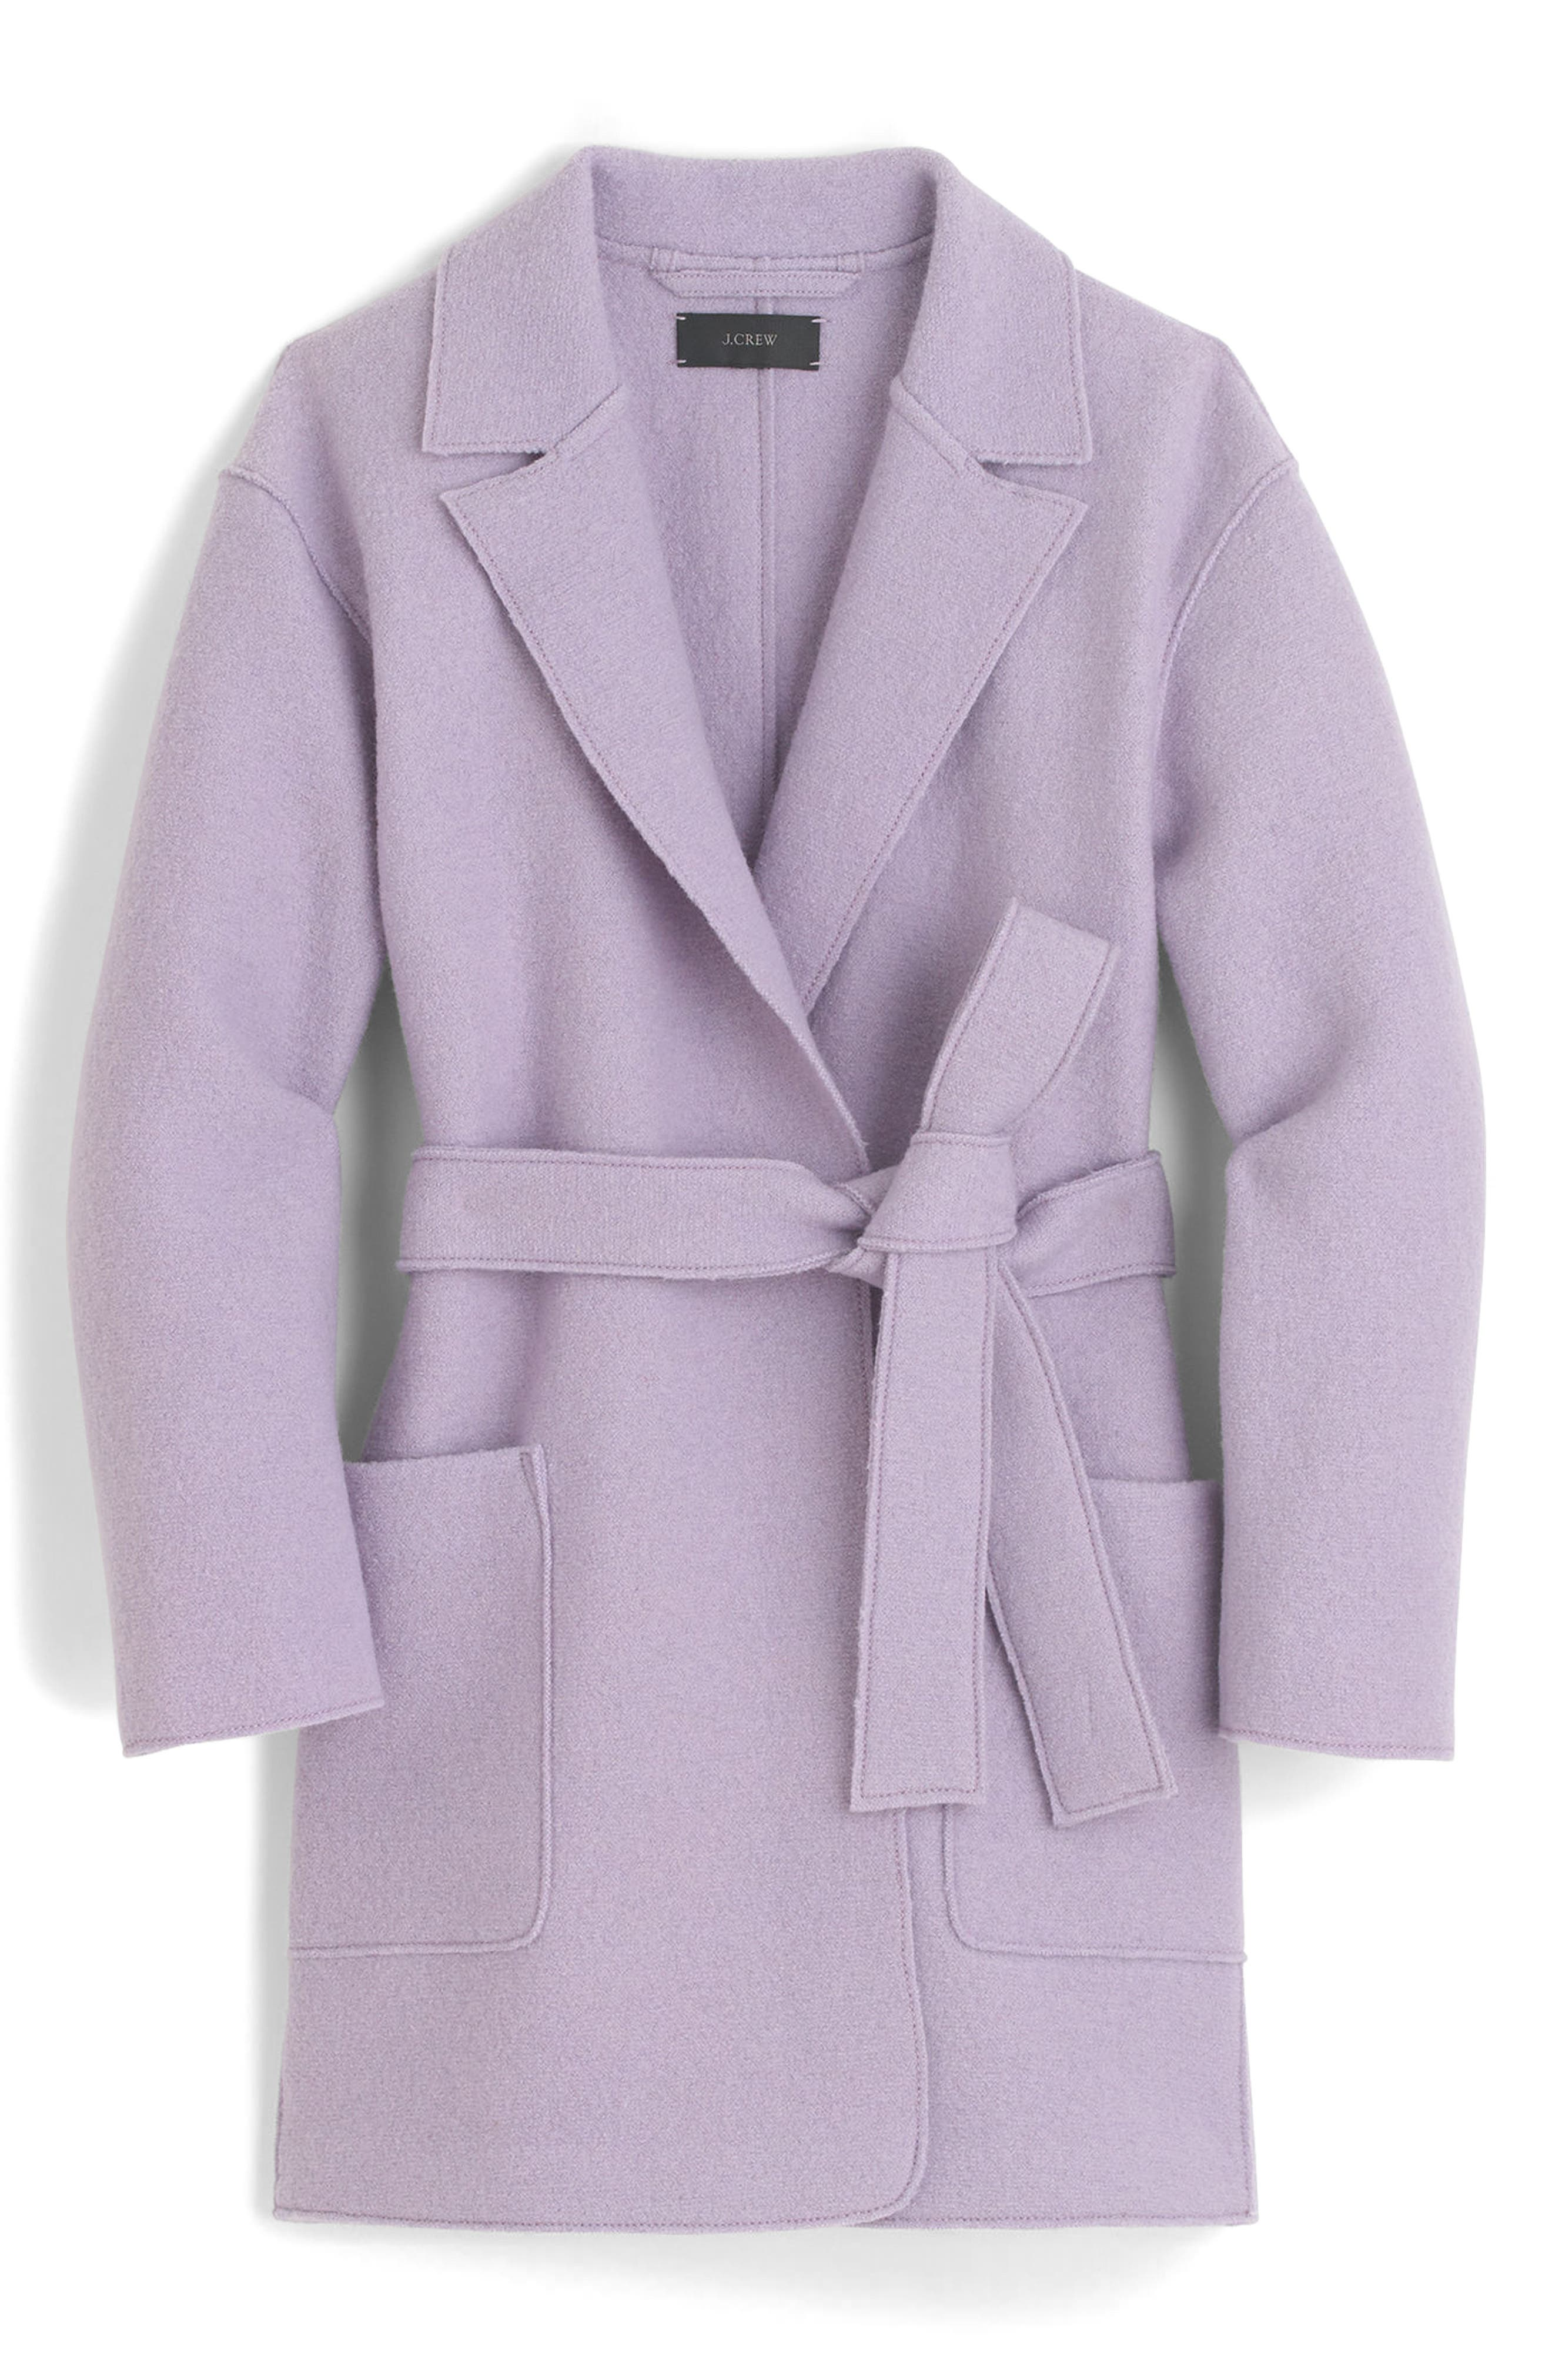 J.Crew Sabrina Boiled Wool Wrap Coat (Regular & Petite)